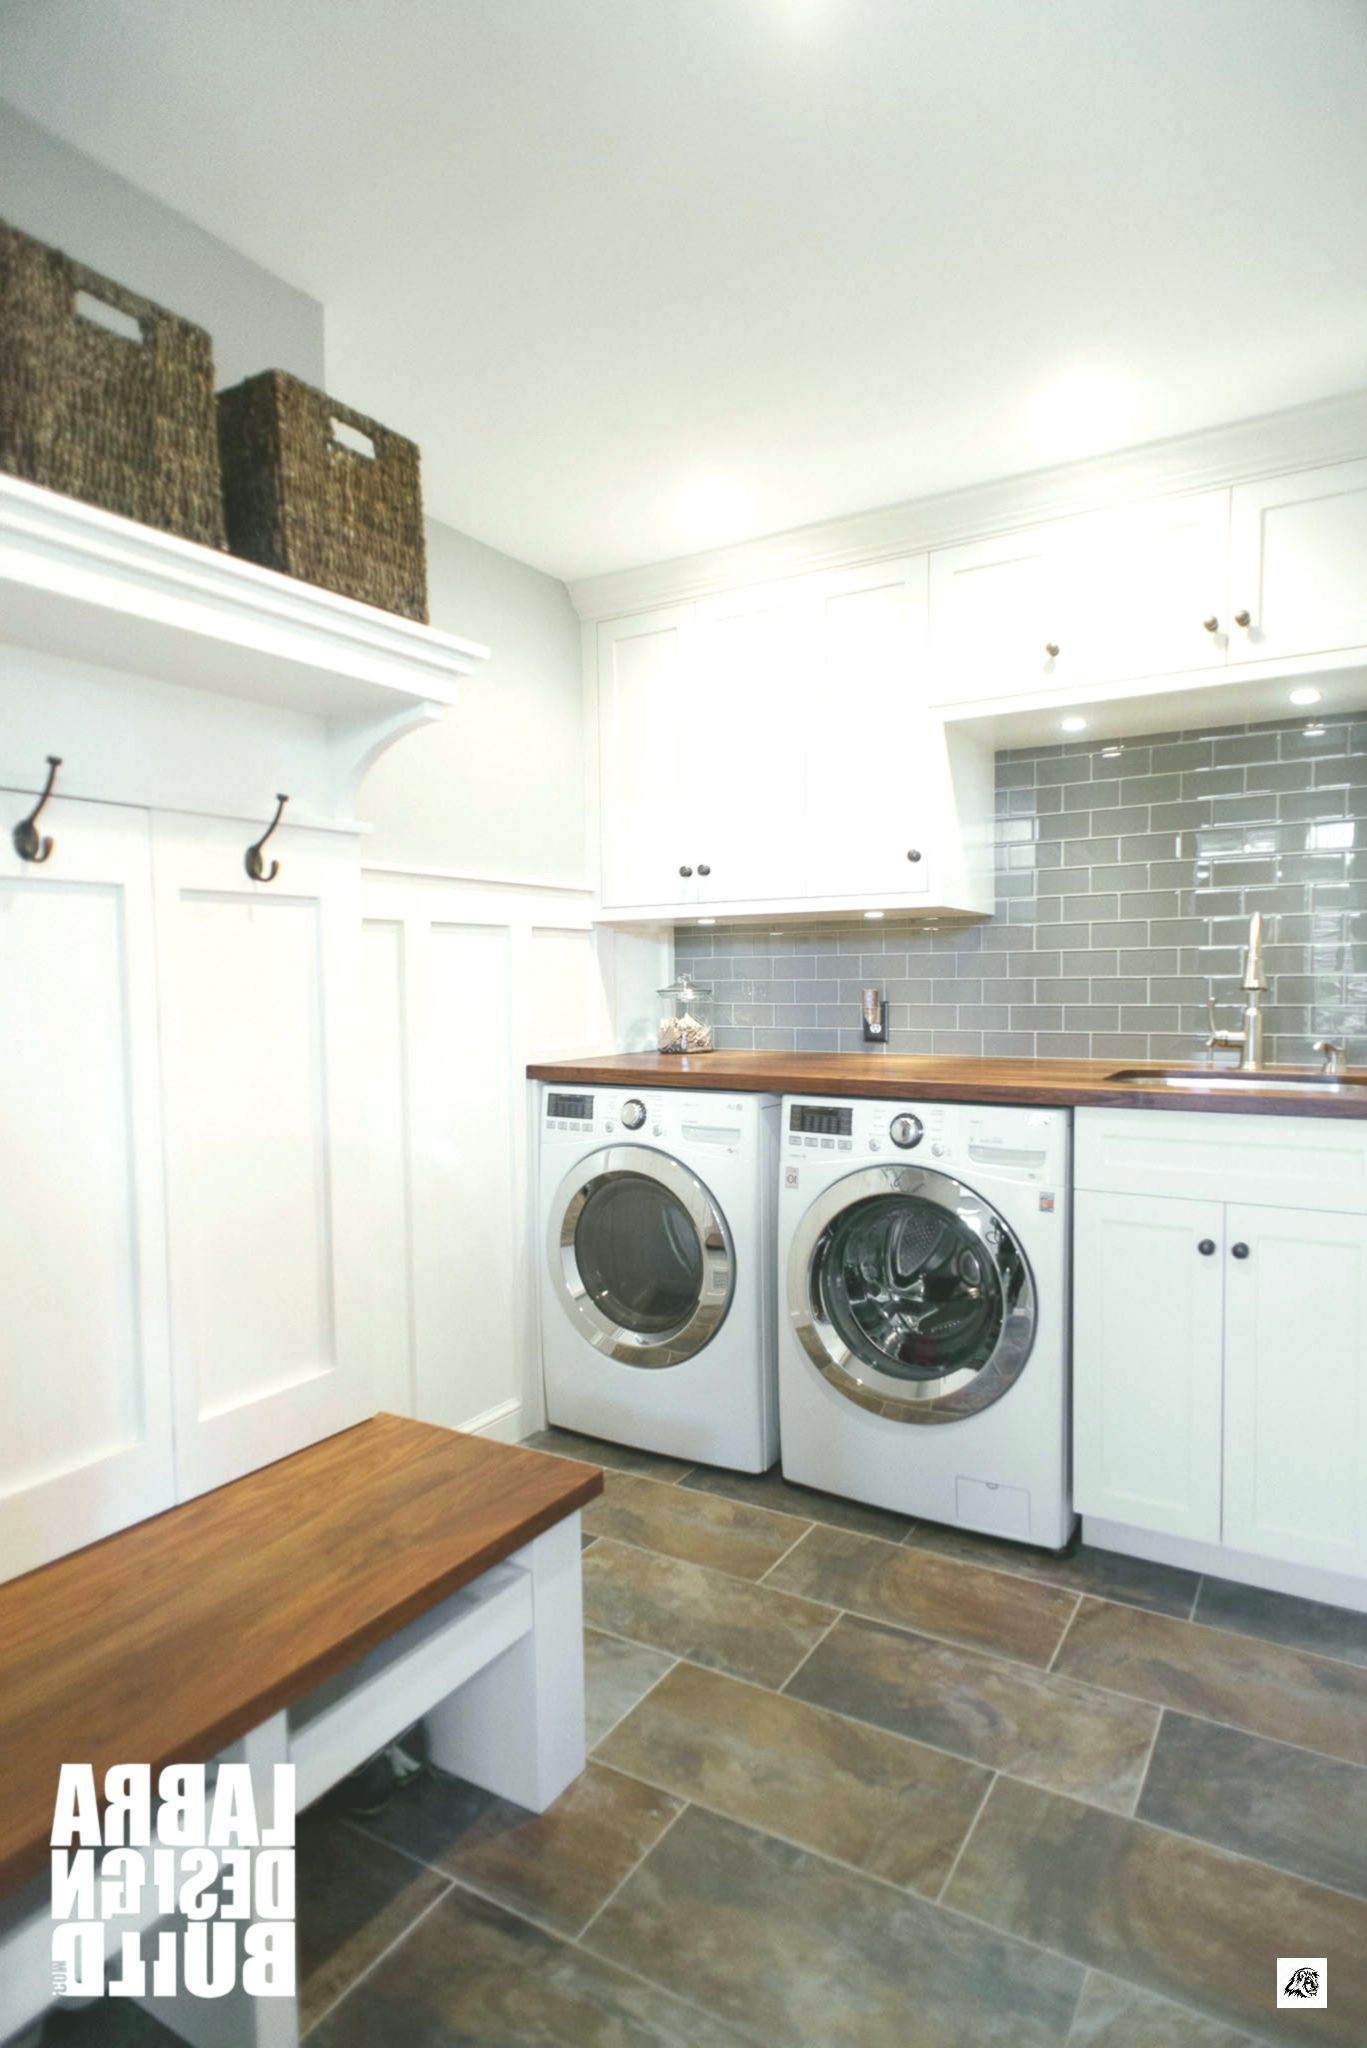 Office And Laundry Room Combo Amazing Bedroom Ideas 2019 Bedroom Modella Club Home Design Decor Awesome Bedrooms Laundry Room